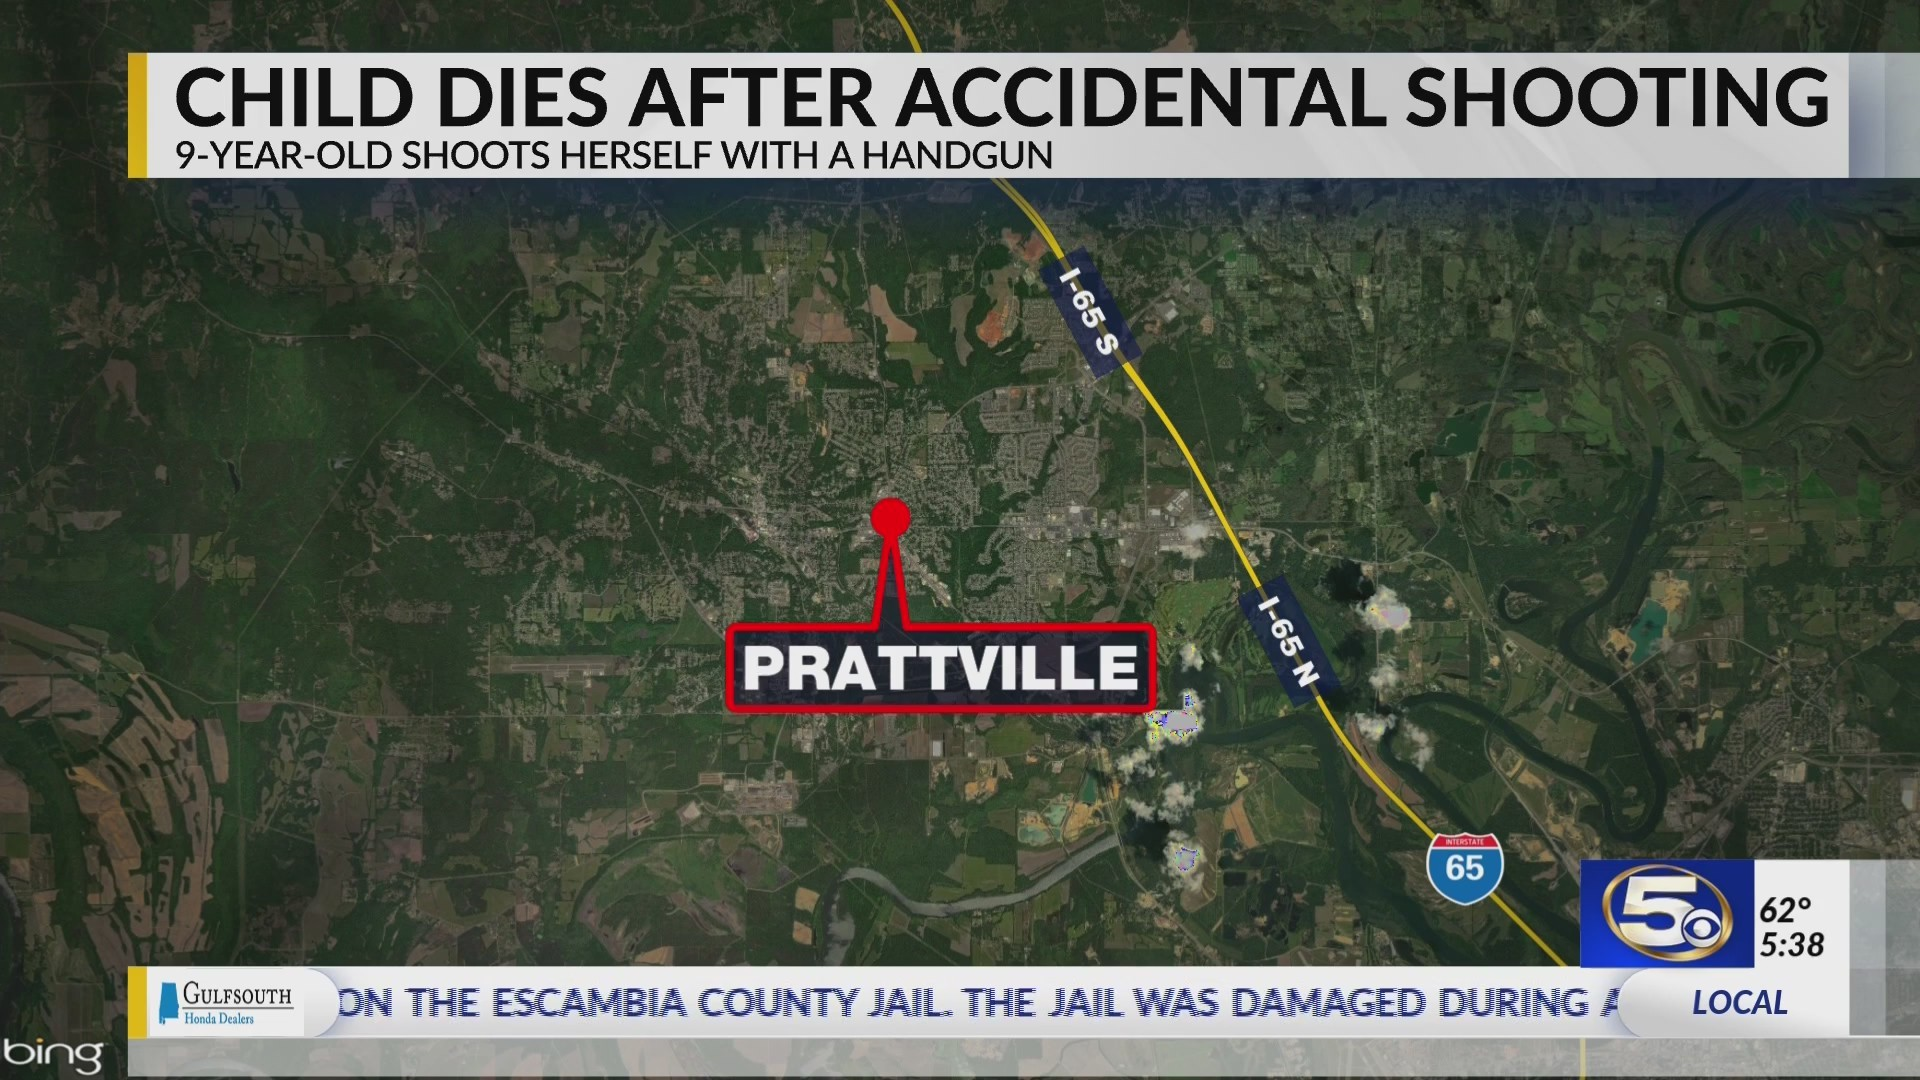 Child Dies After Accidental Shooting in Prattville